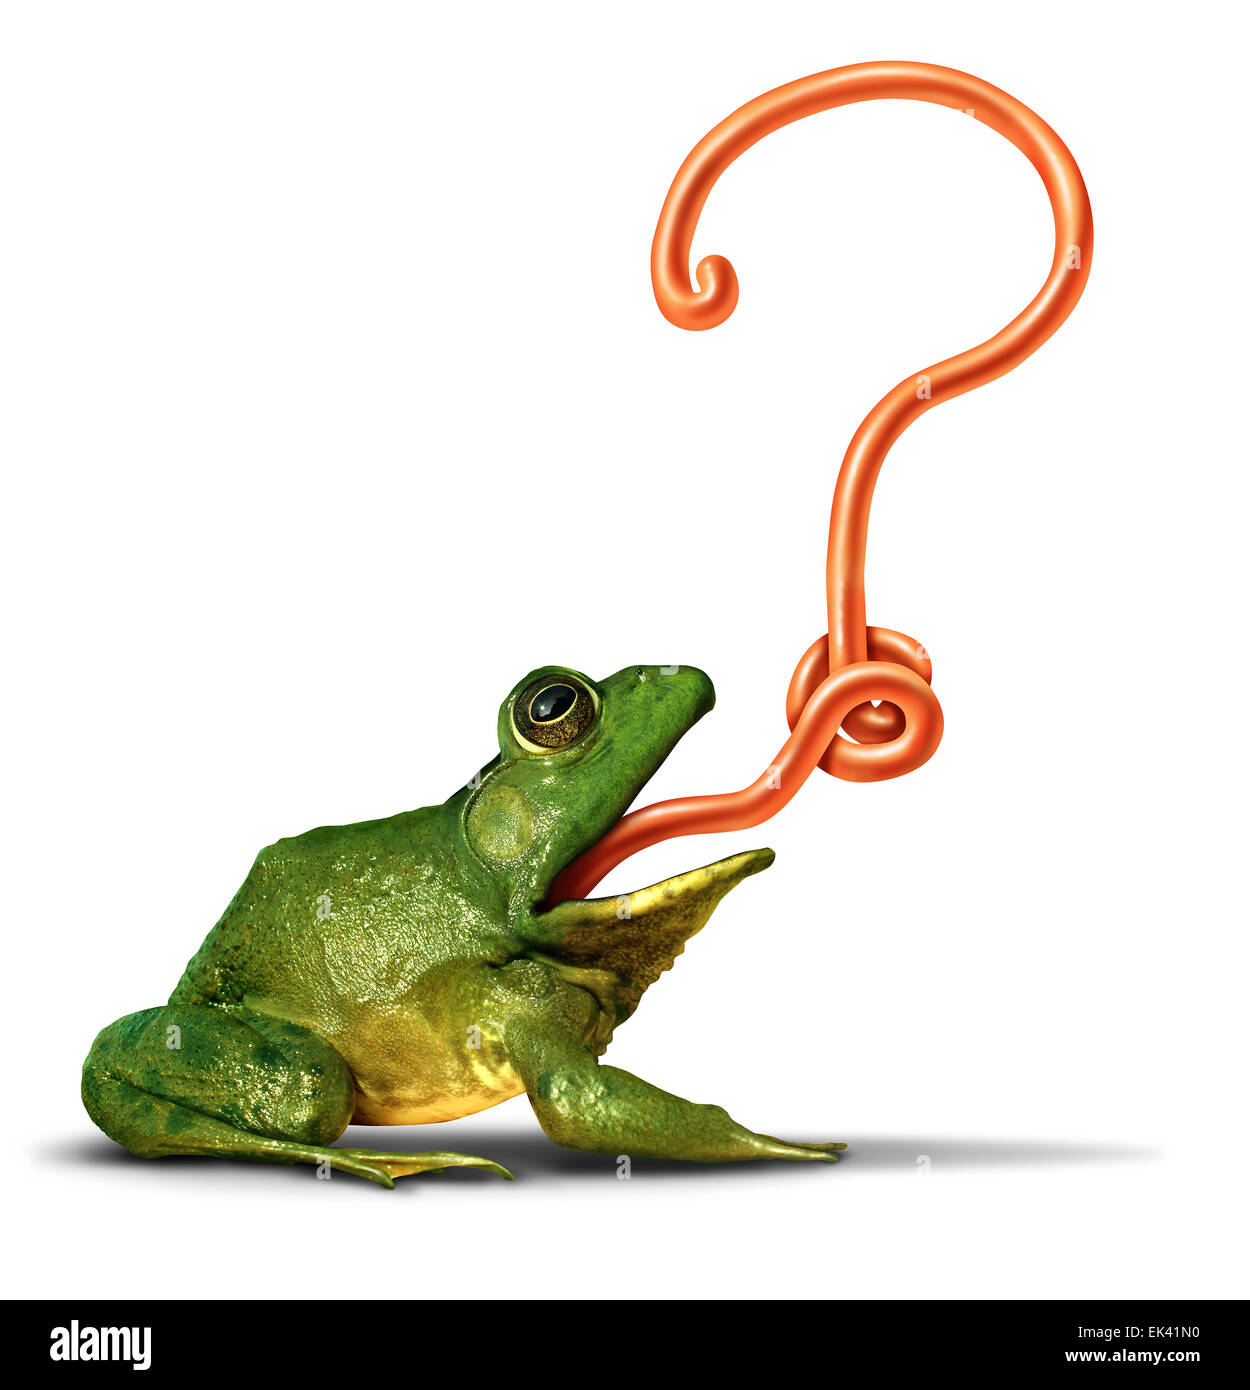 Nature questions as a green frog with its tongue shaped as a question mark as a symbol for ecology and environment - Stock Image